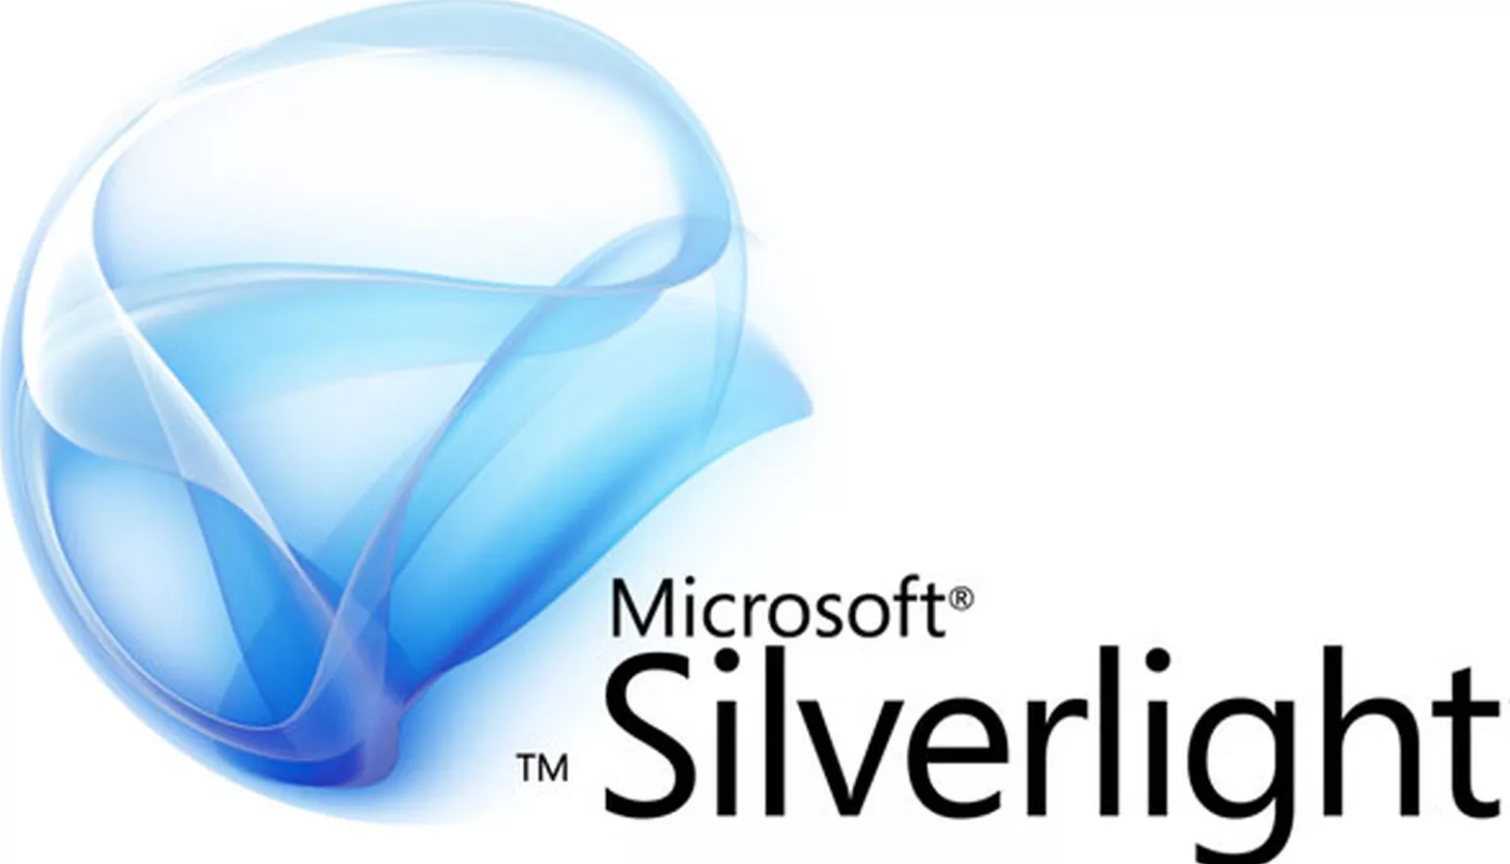 Silverlight ends in 2021 but Banks still selecting it